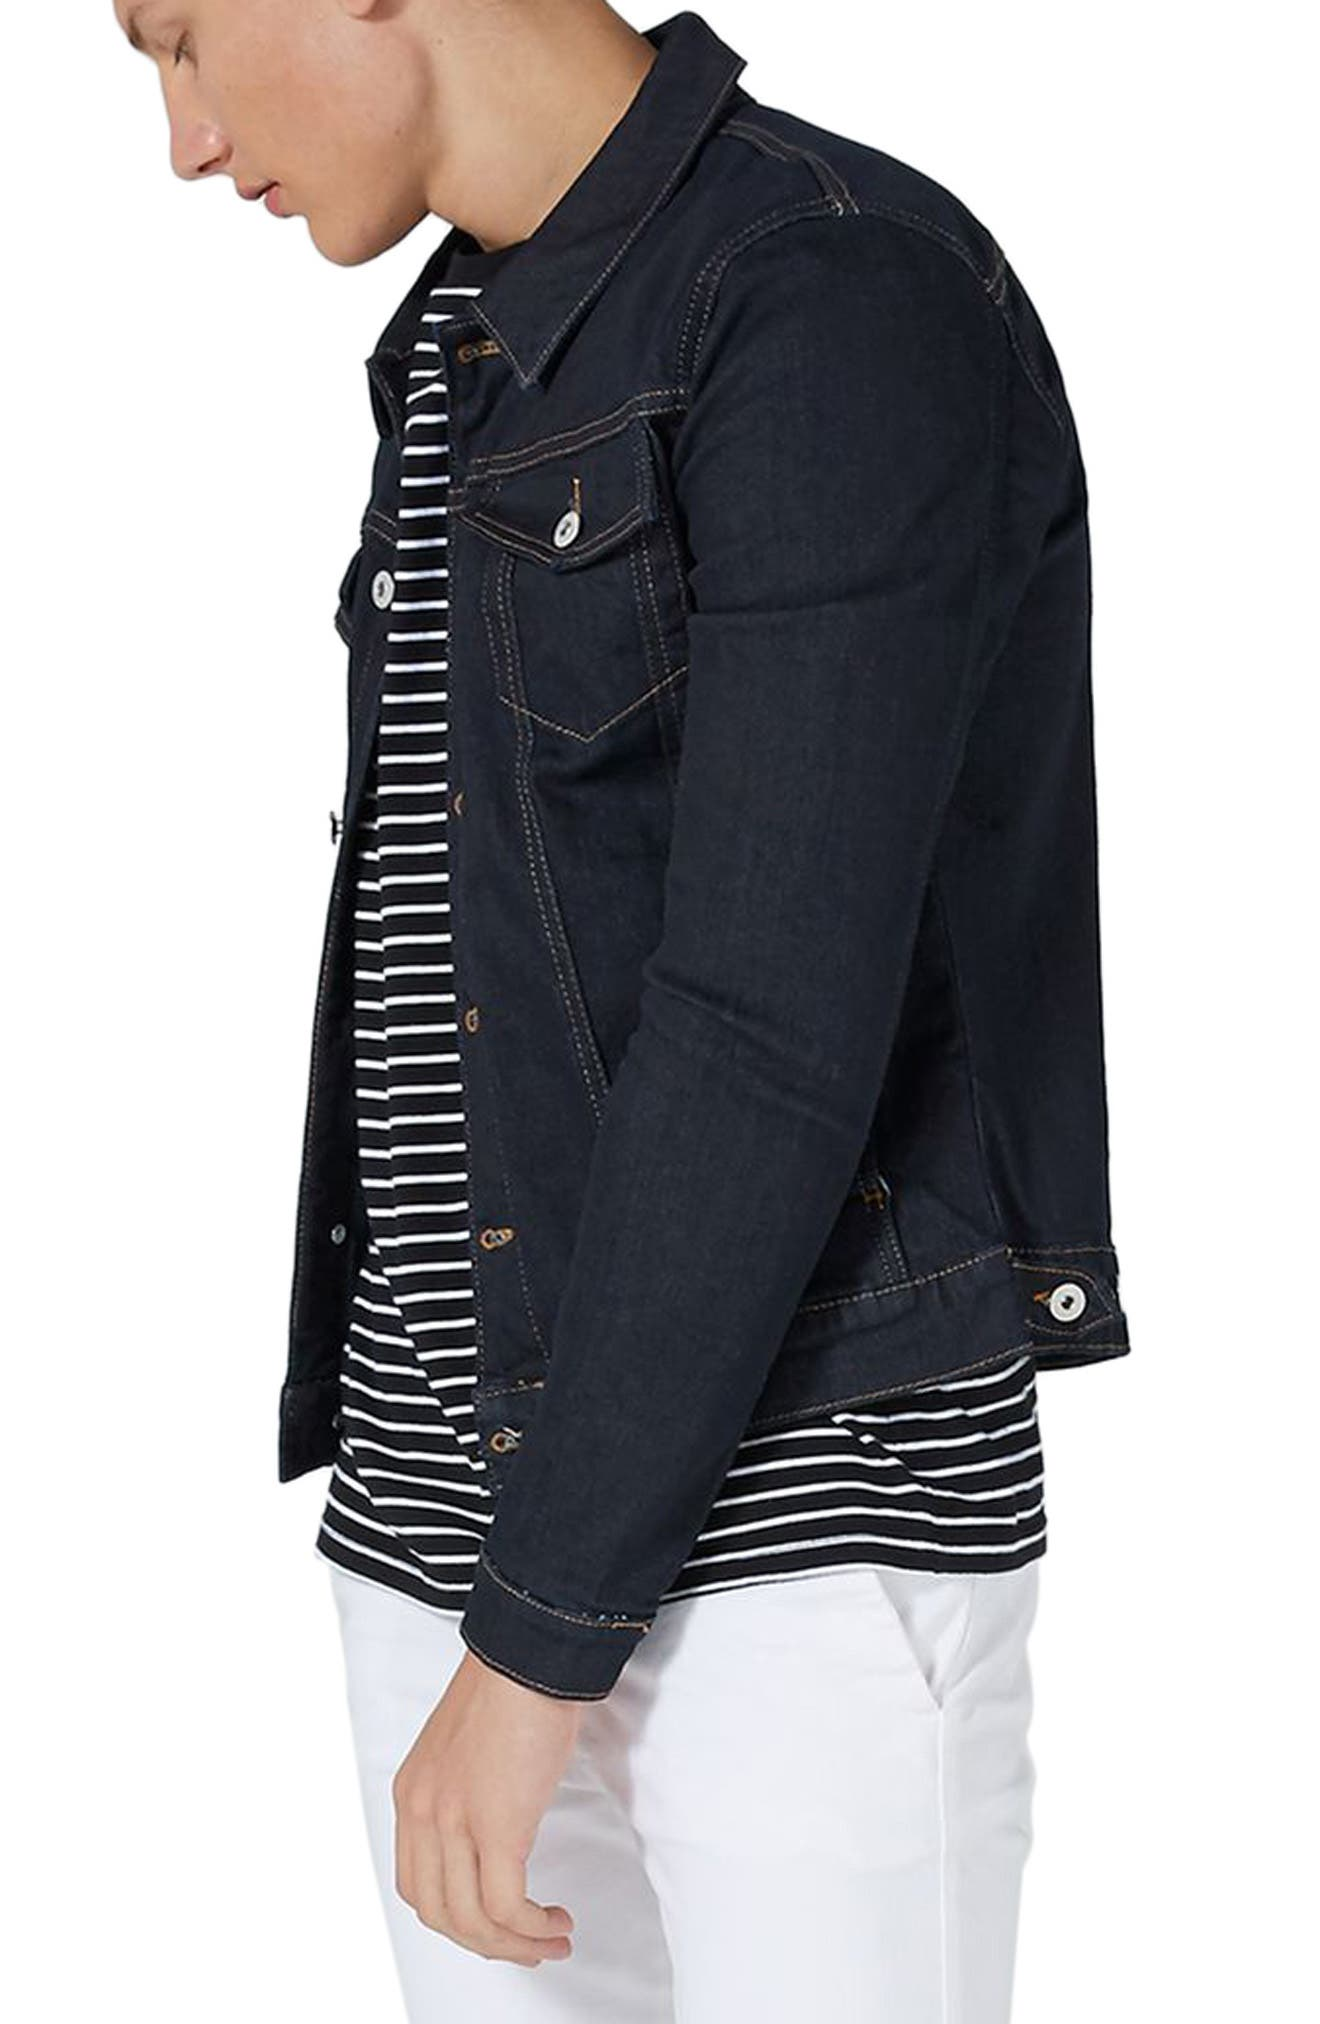 Raw Muscle Fit Denim Jacket,                         Main,                         color, 401